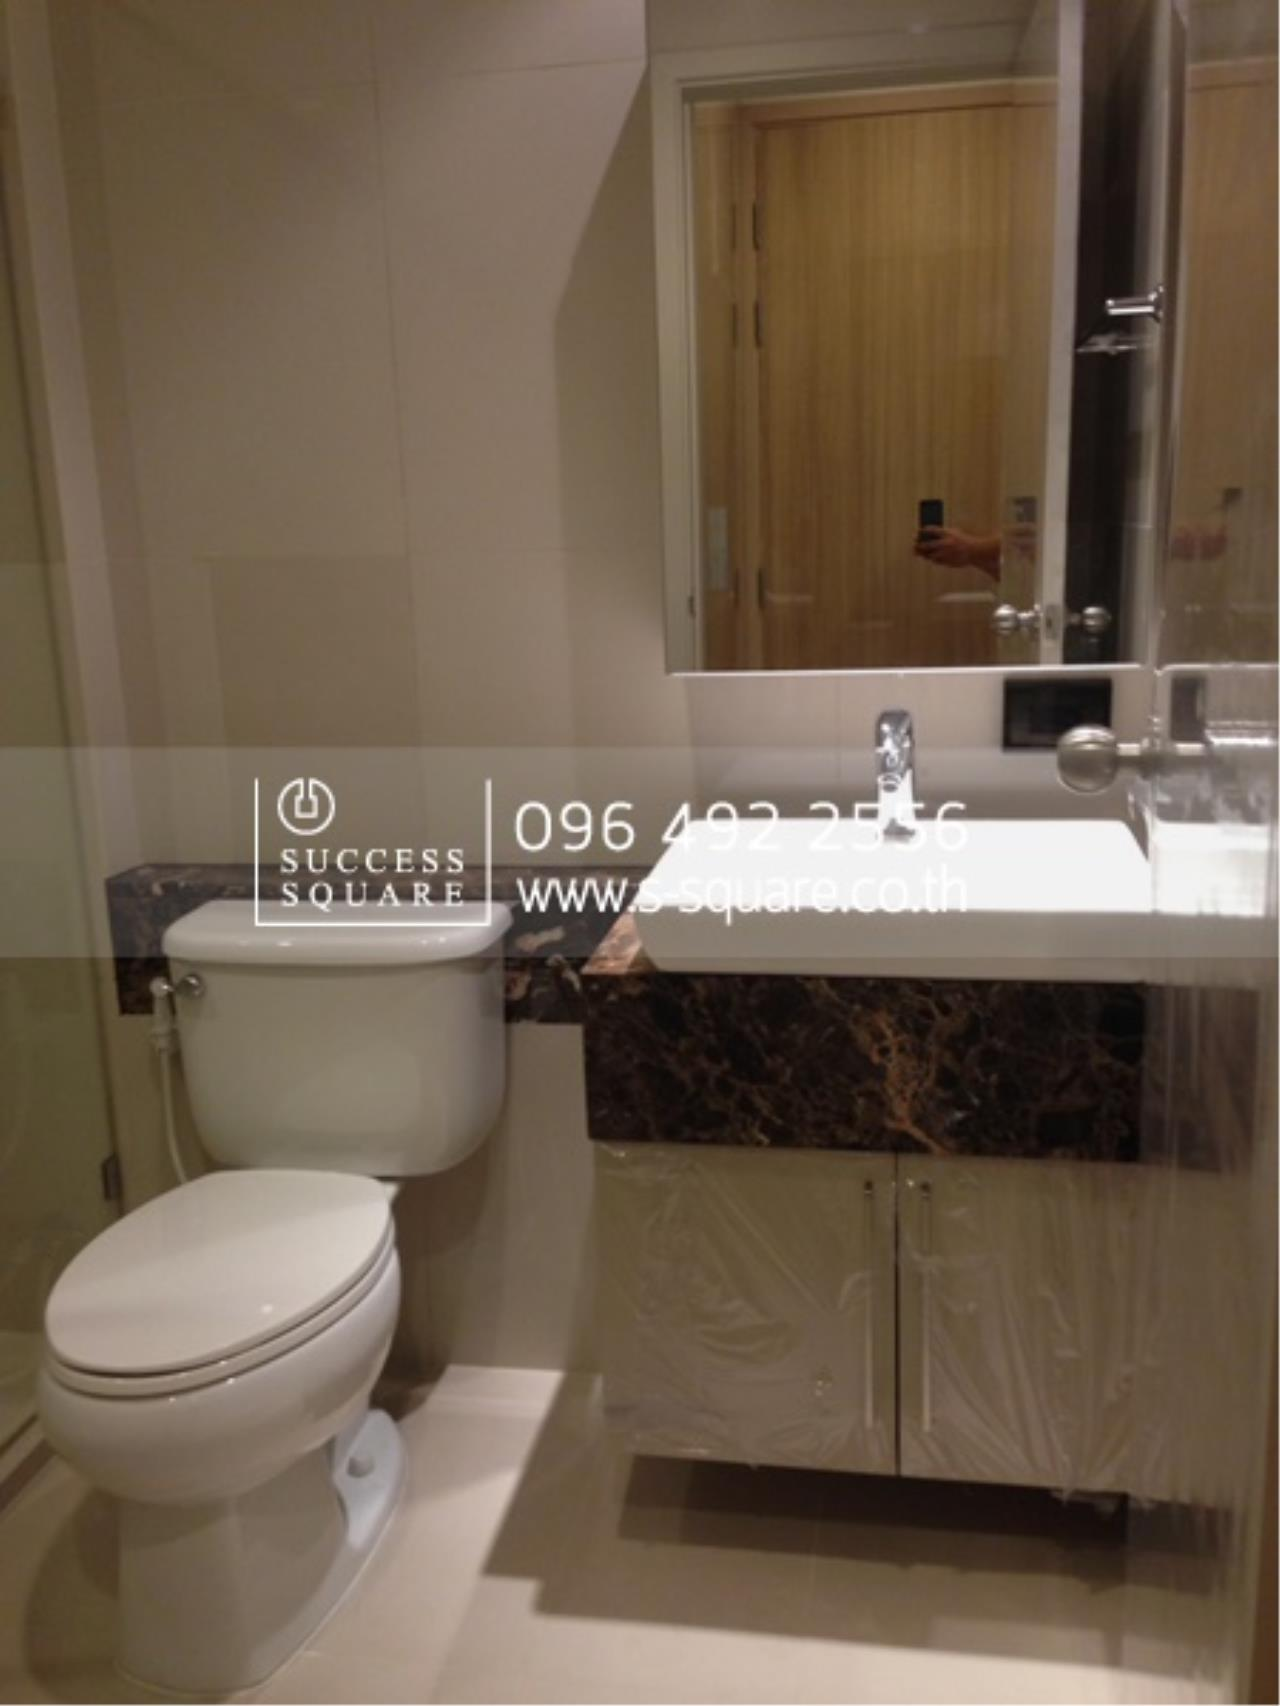 Success Square Agency's Fuse Sathorn-Taksin, Condo For Sale 1 Bedrooms 1